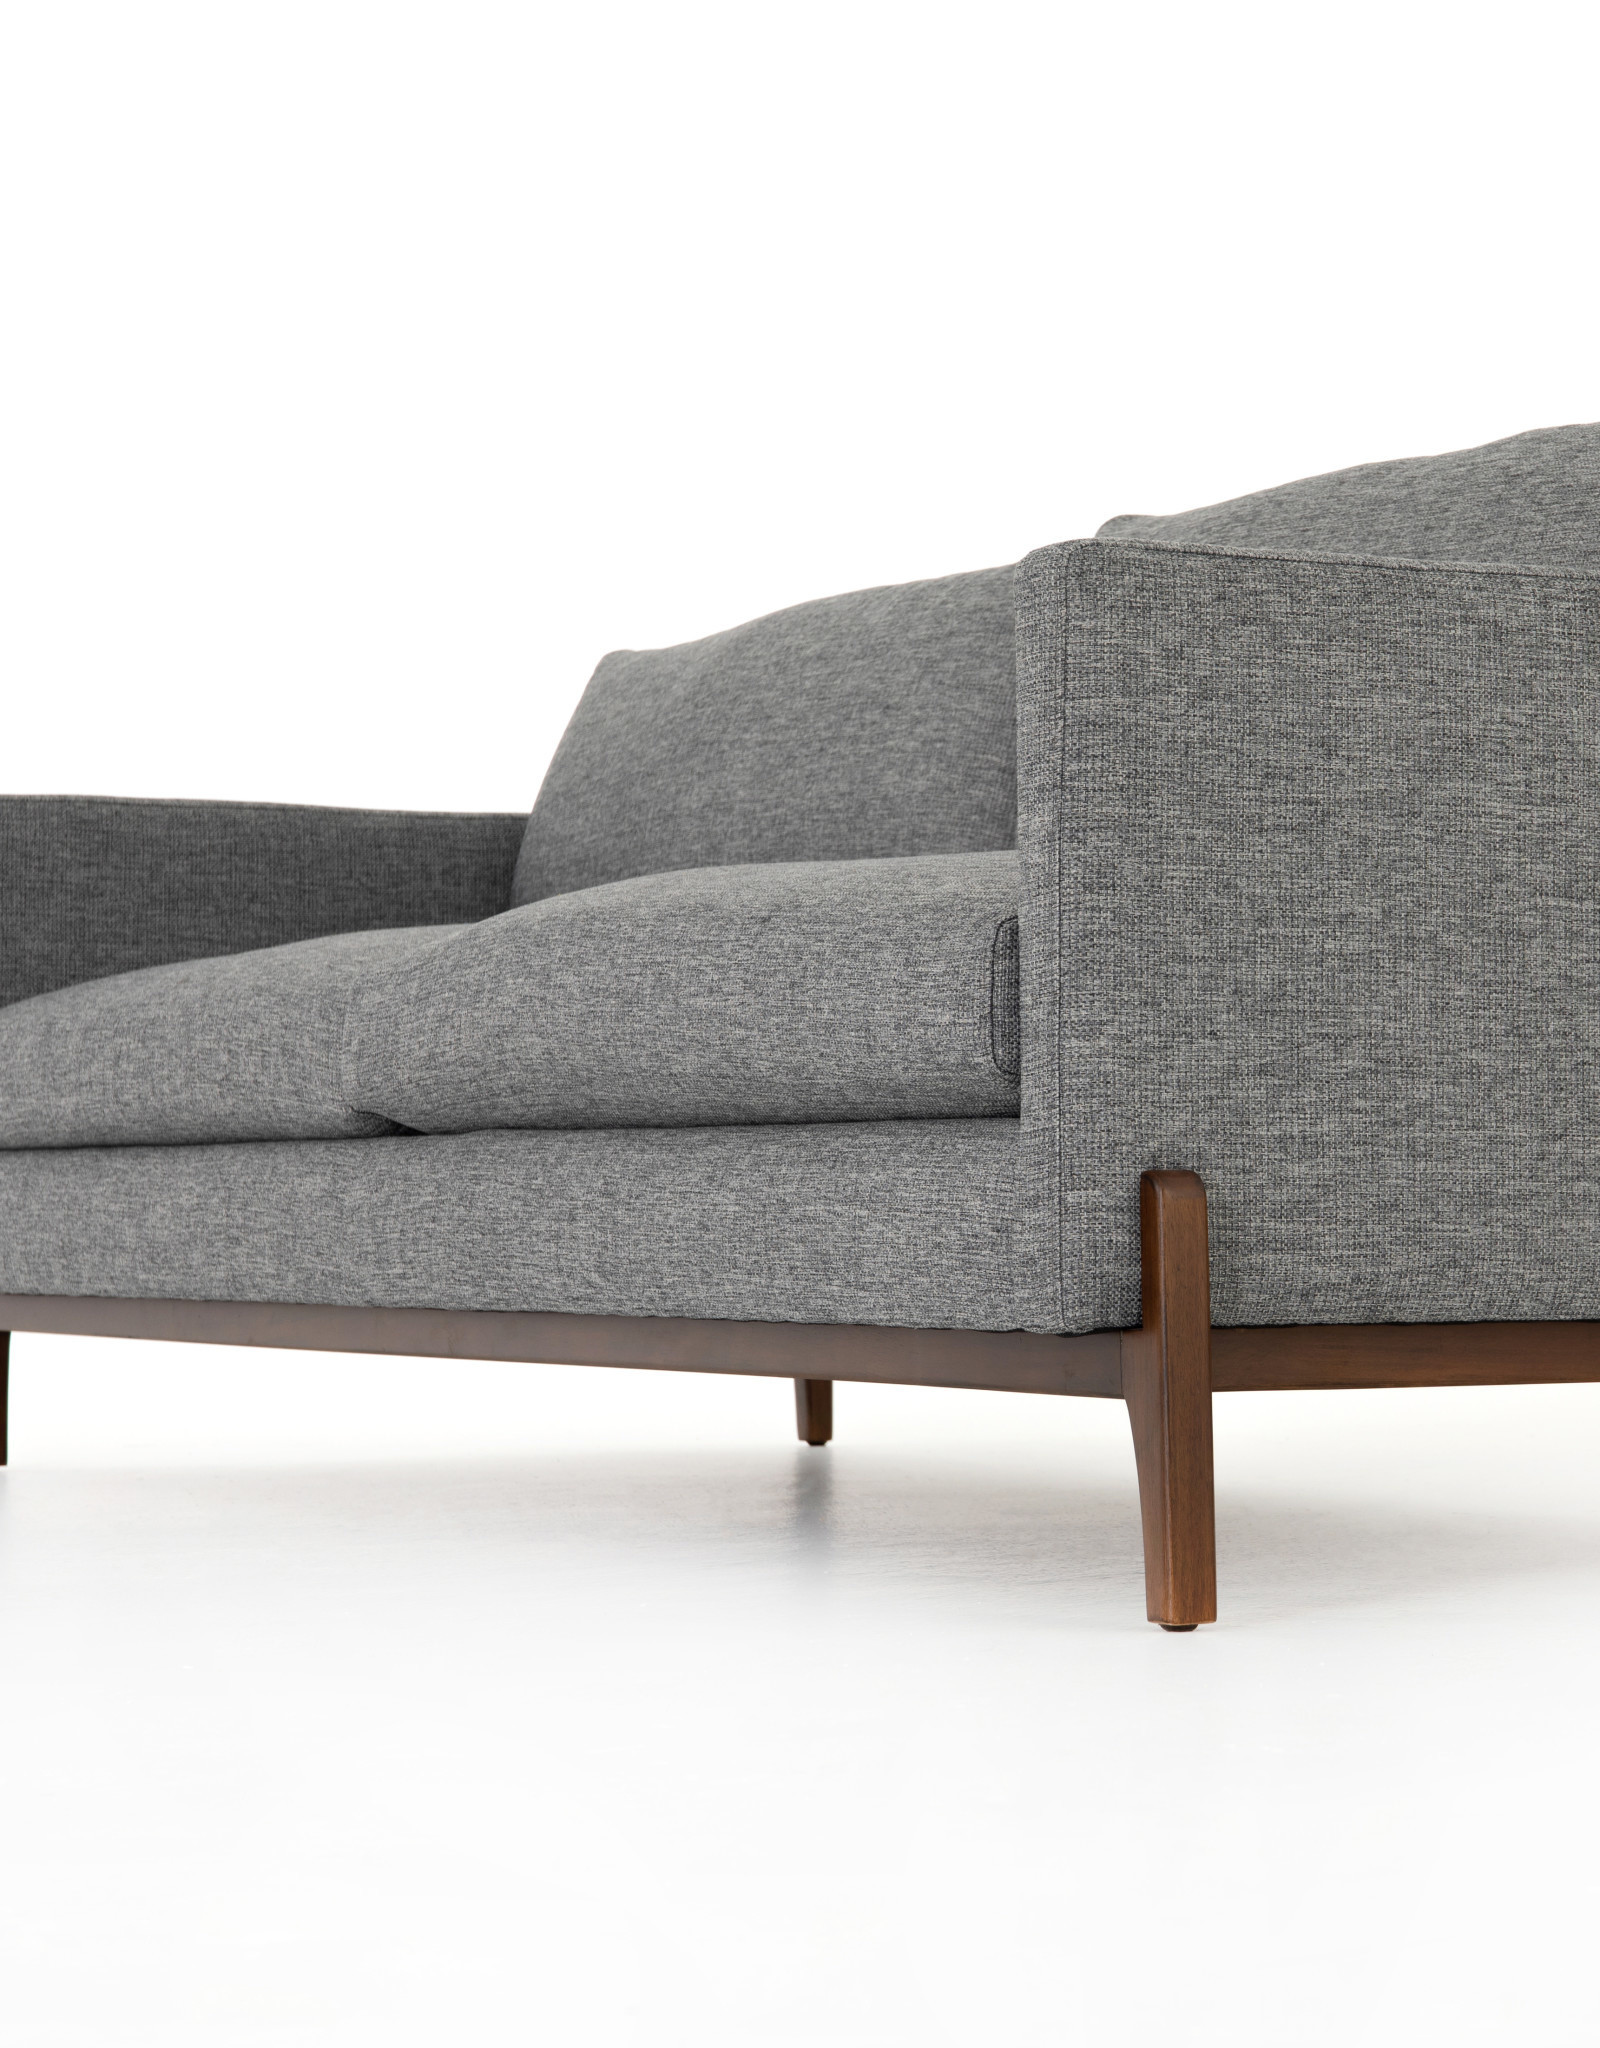 Francesca Fairflax Sofa